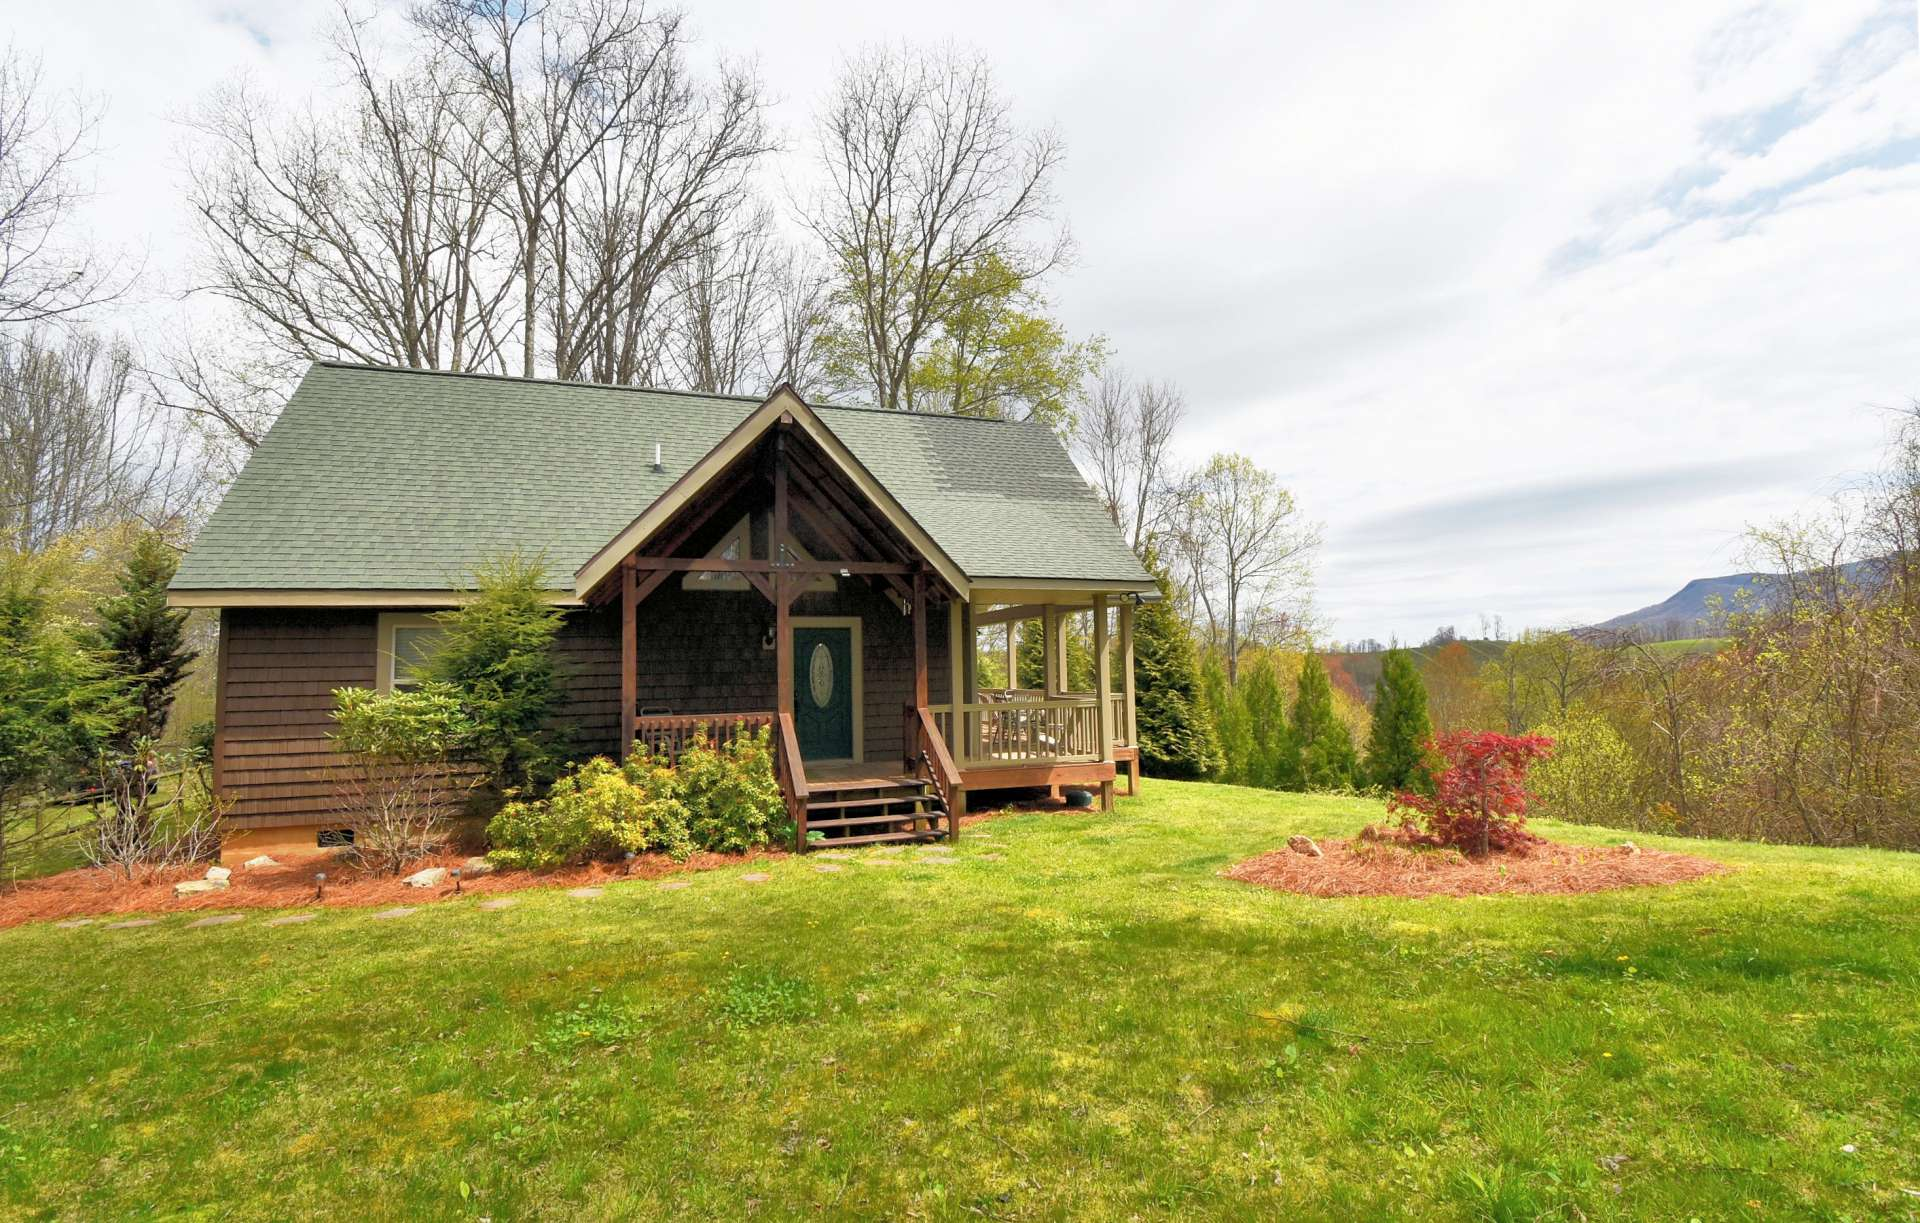 Offering a true log cabin  living experience, you will enjoy  modern conveniences, low maintenance exterior, and lovingly landscaped surroundings awaiting you here at this special place in the NC High Country.